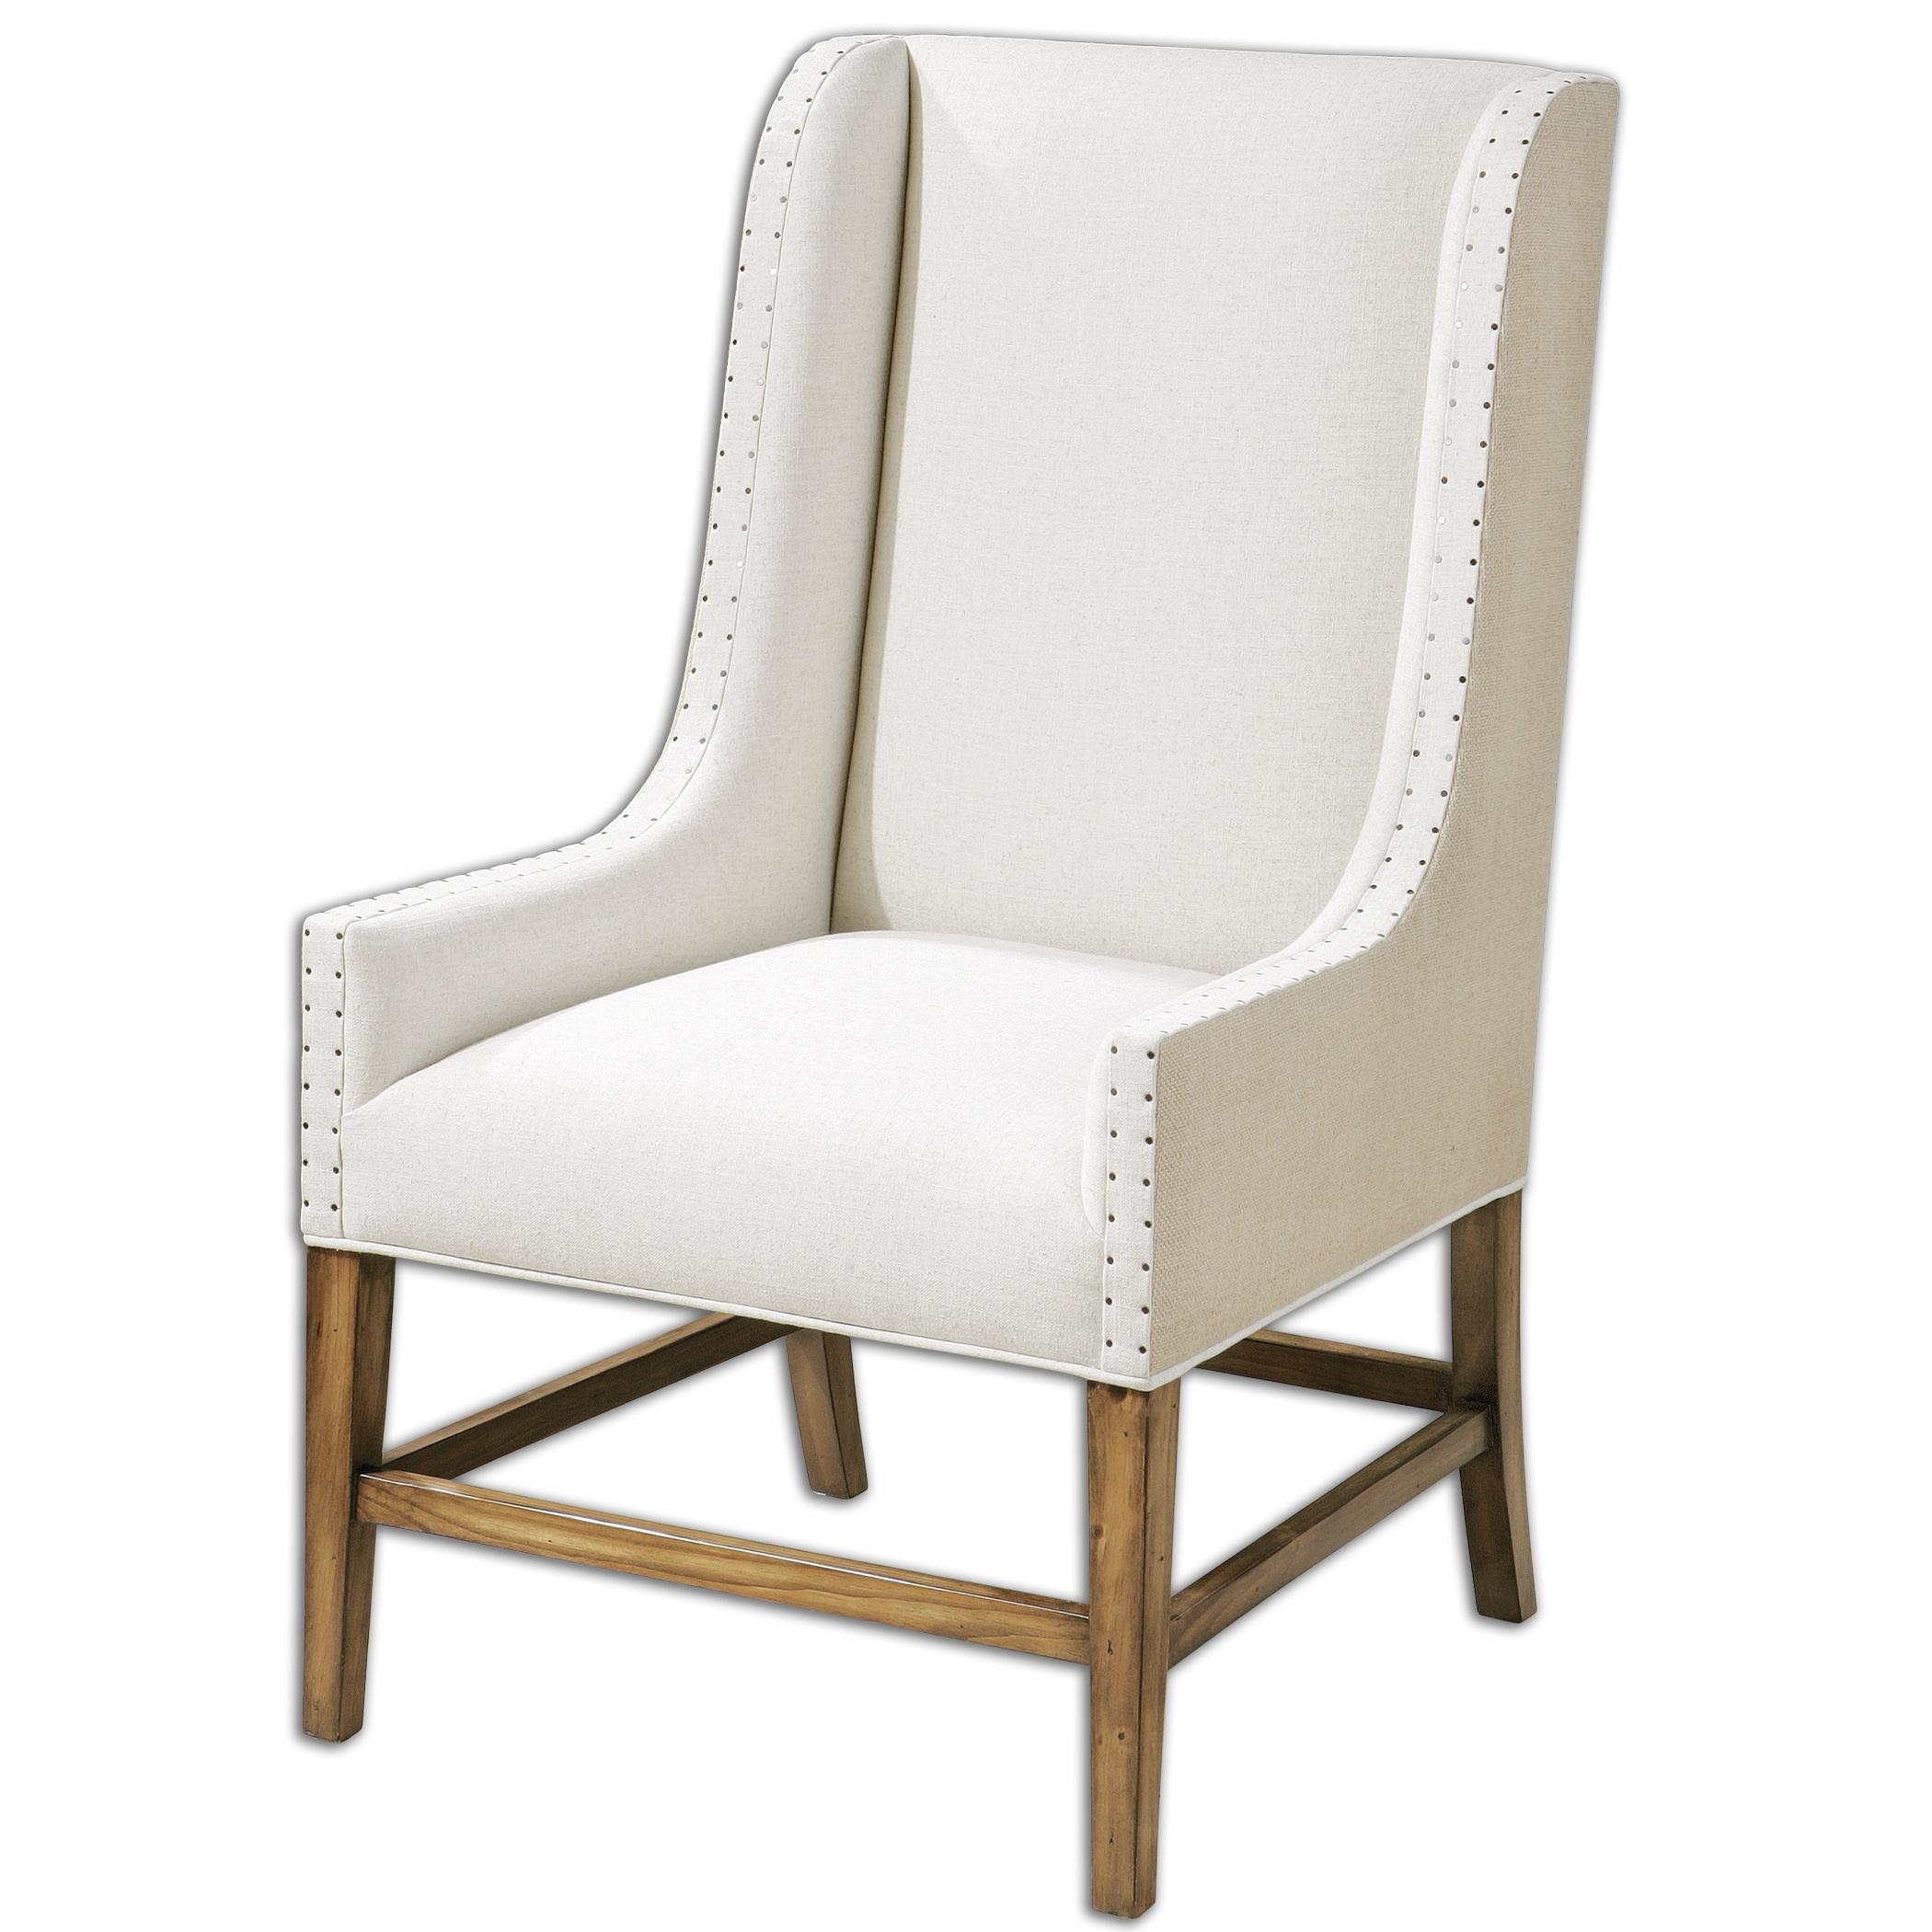 Uttermost Accent Furniture Dalma Linen Wing Chair - Item Number: 23189